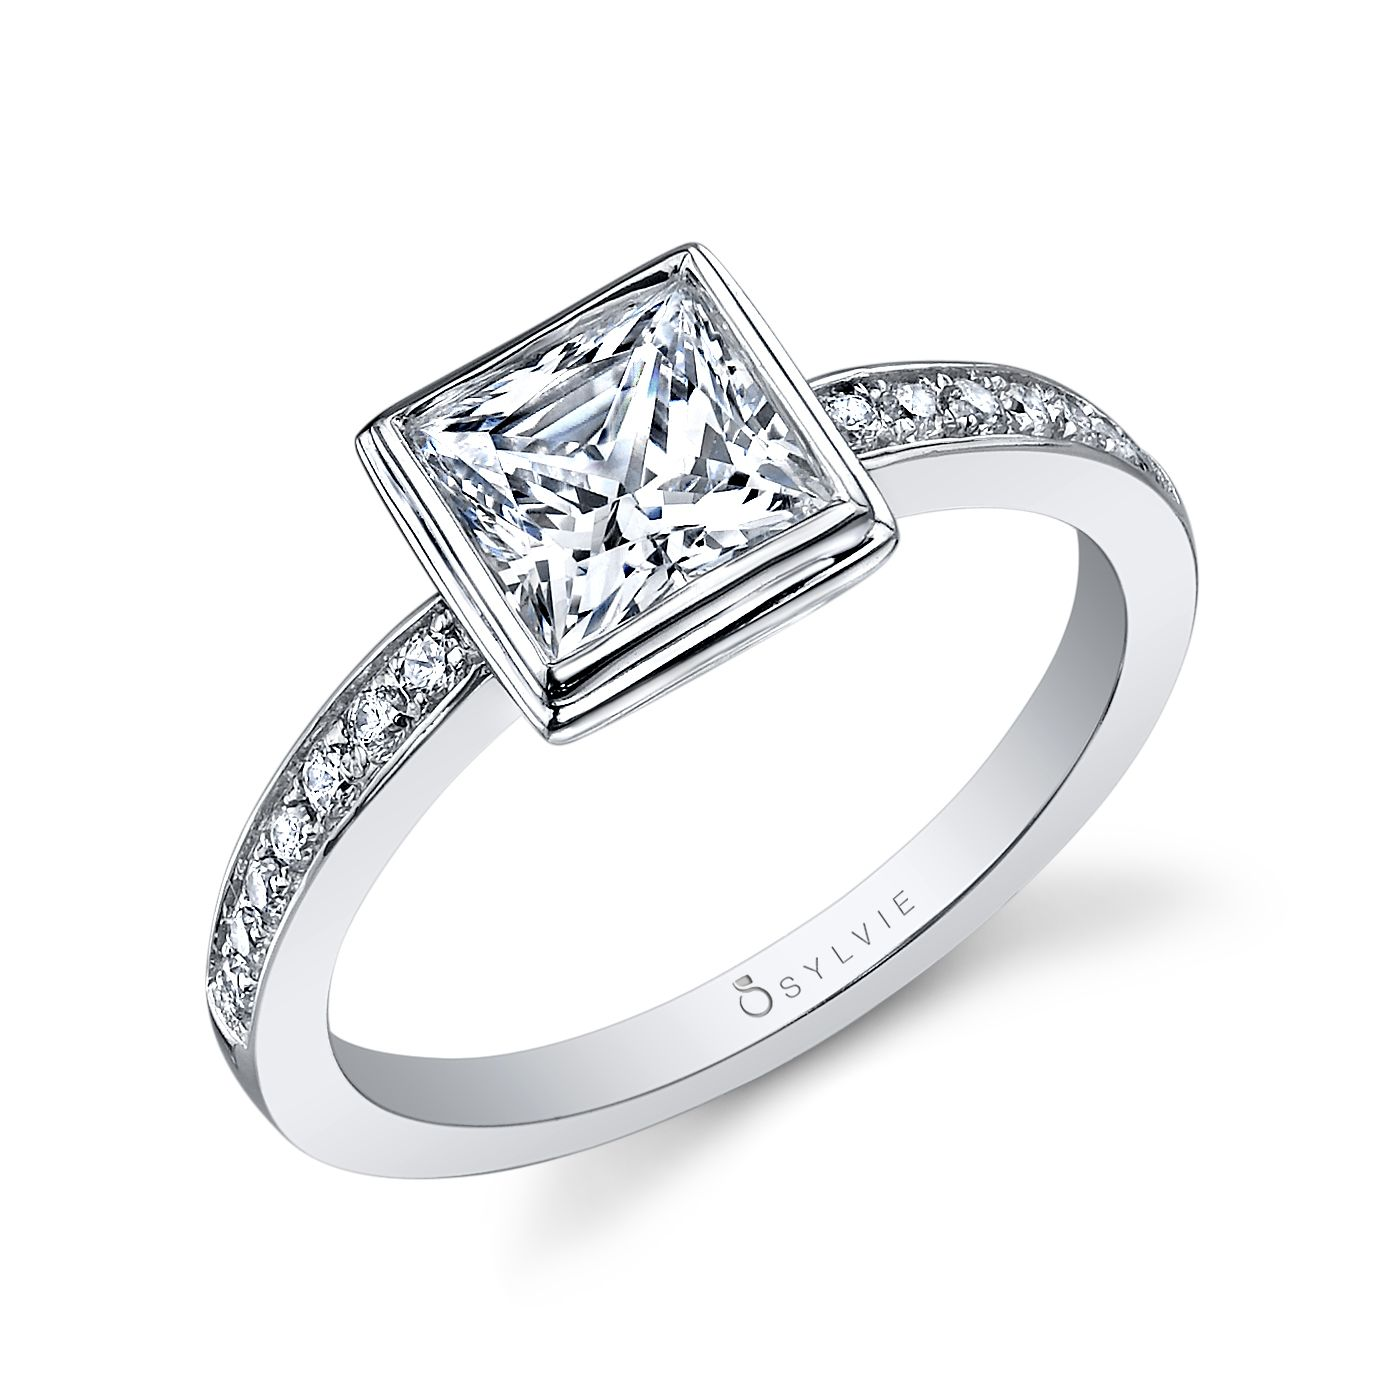 rings calvinsjewelry halo profile com and low co simple gabriel solitaire ring wedding